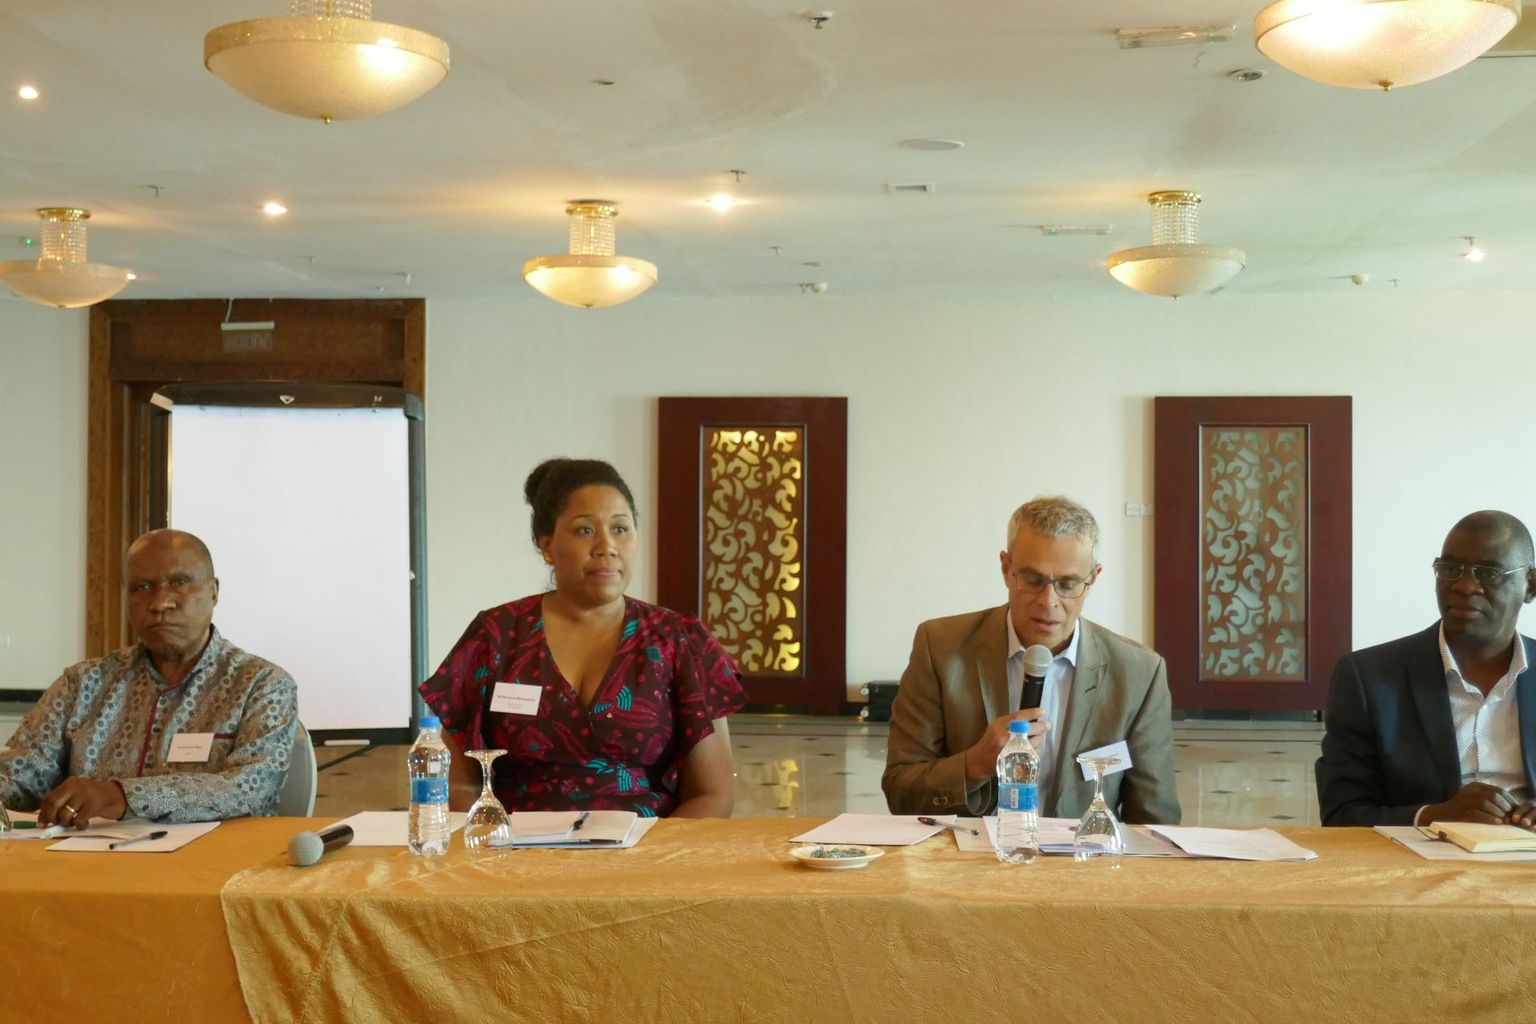 Panel discussion, Tansania 2018 with Prof. P.B. Mihyo, Marianna Balampana, Prof. Laurent Goetschel & Dr. Honorati Masanja